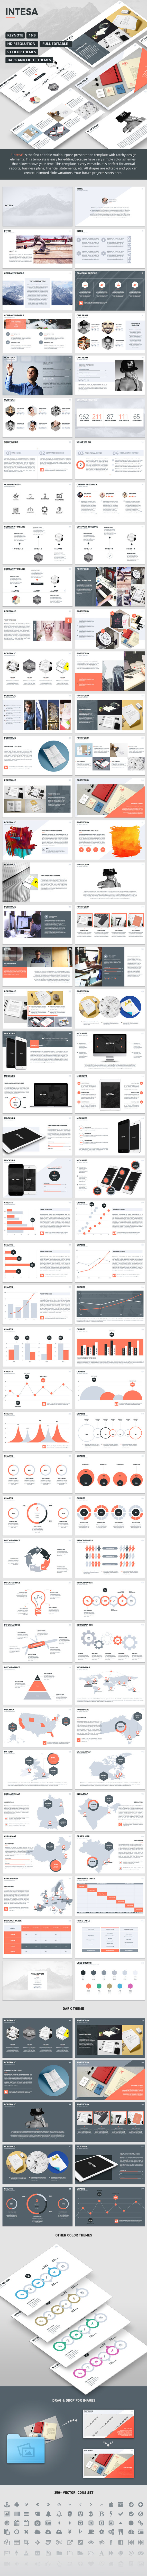 Intesa Keynote Presentation Template - Keynote Templates Presentation Templates